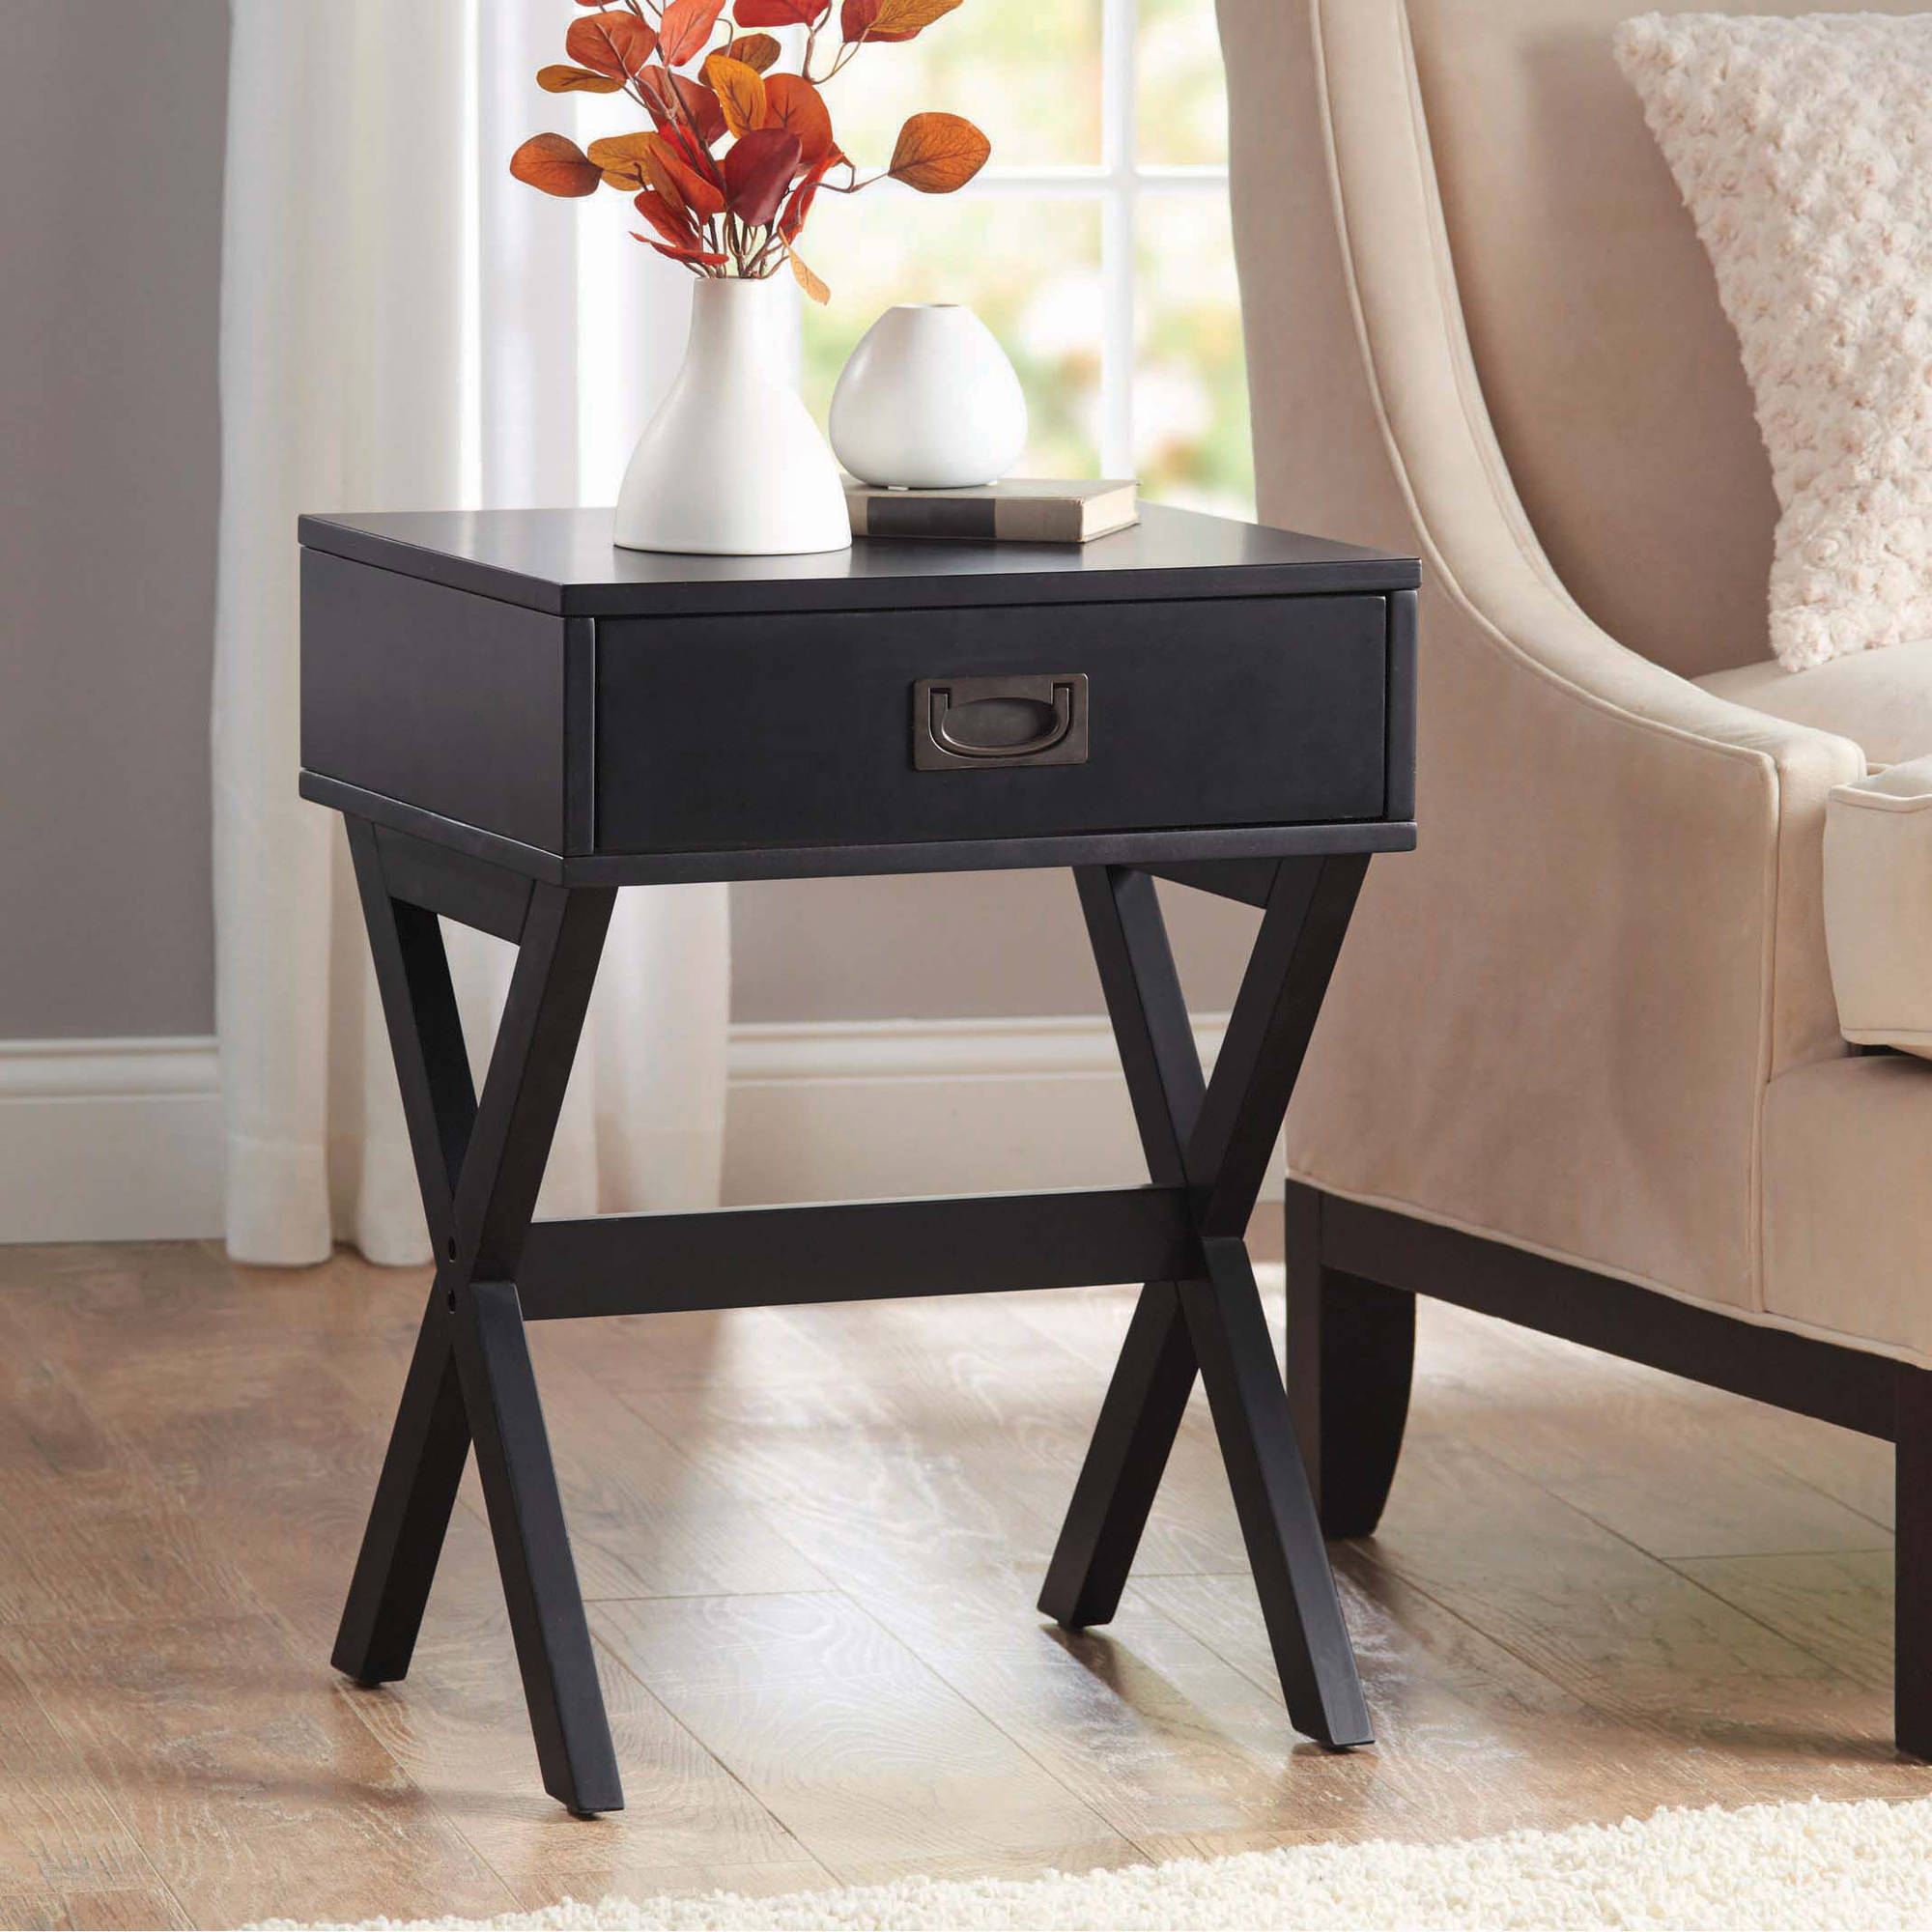 better homes gardens leg accent table with drawer multiple room essentials metal patio colors chairside drawers ashley furniture tables heavy umbrella base stands wade teton home